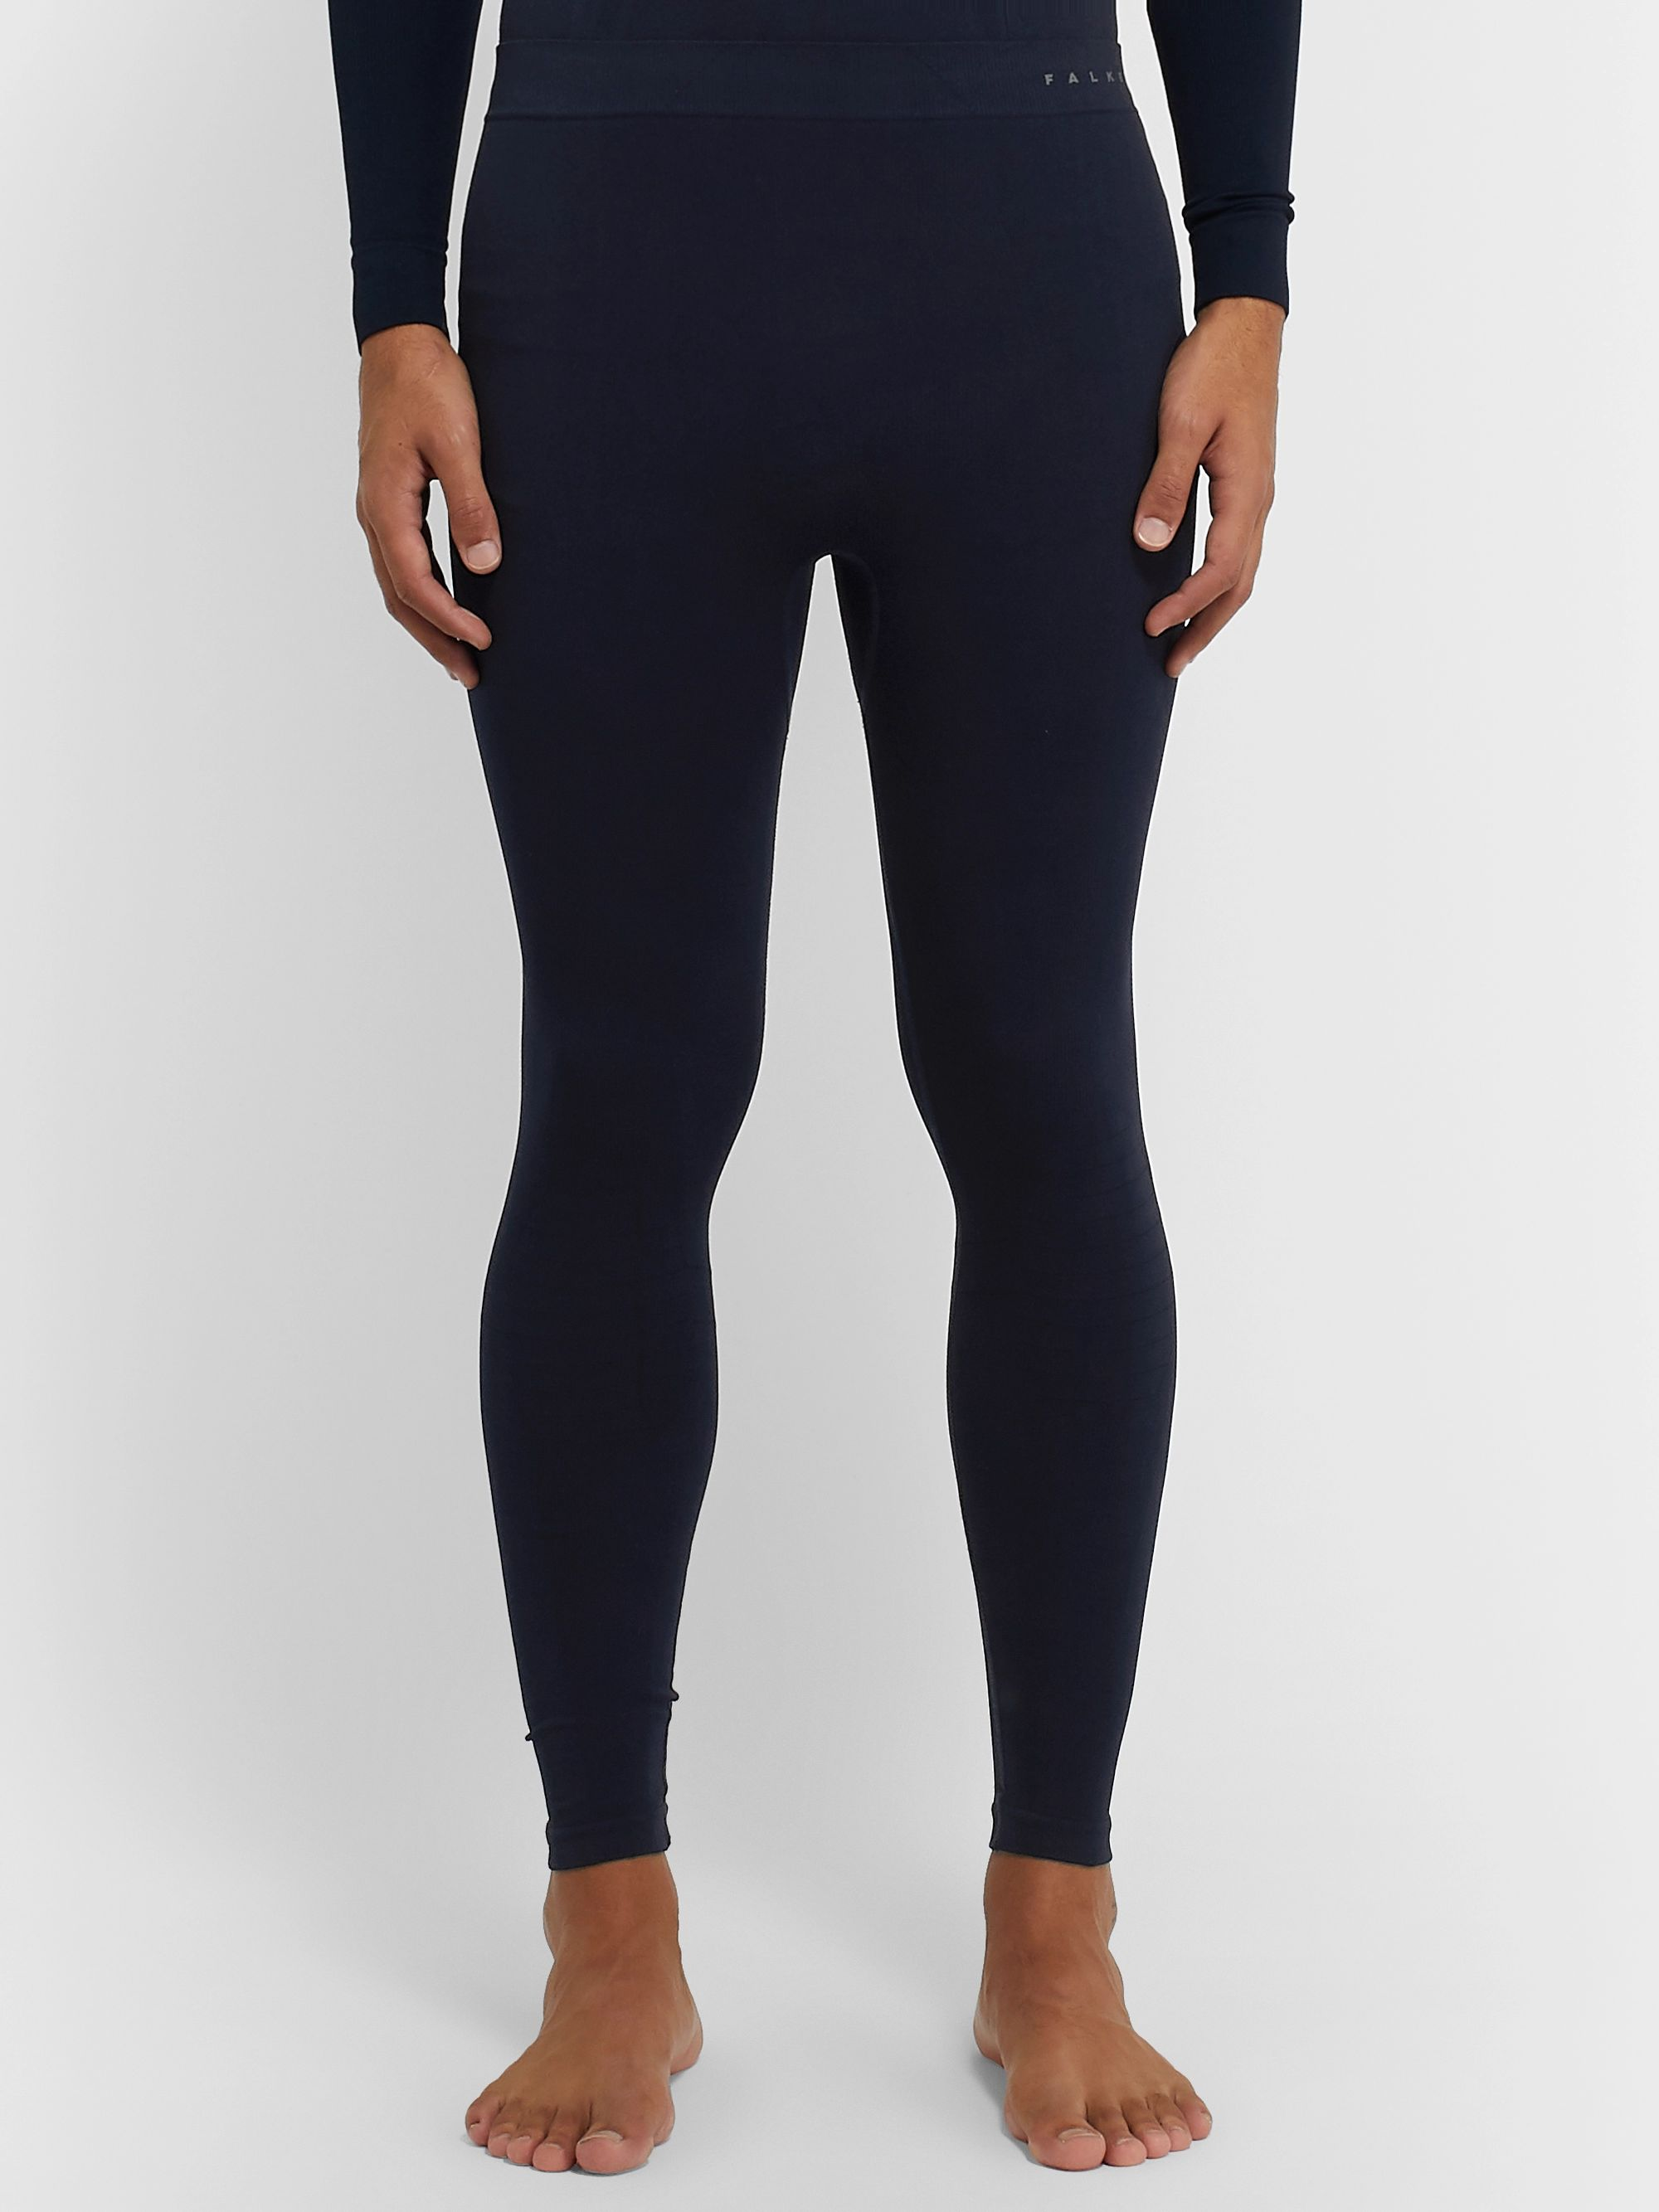 FALKE Ergonomic Sport System Maximum Warm Stretch-Jersey Thermal Ski Tights